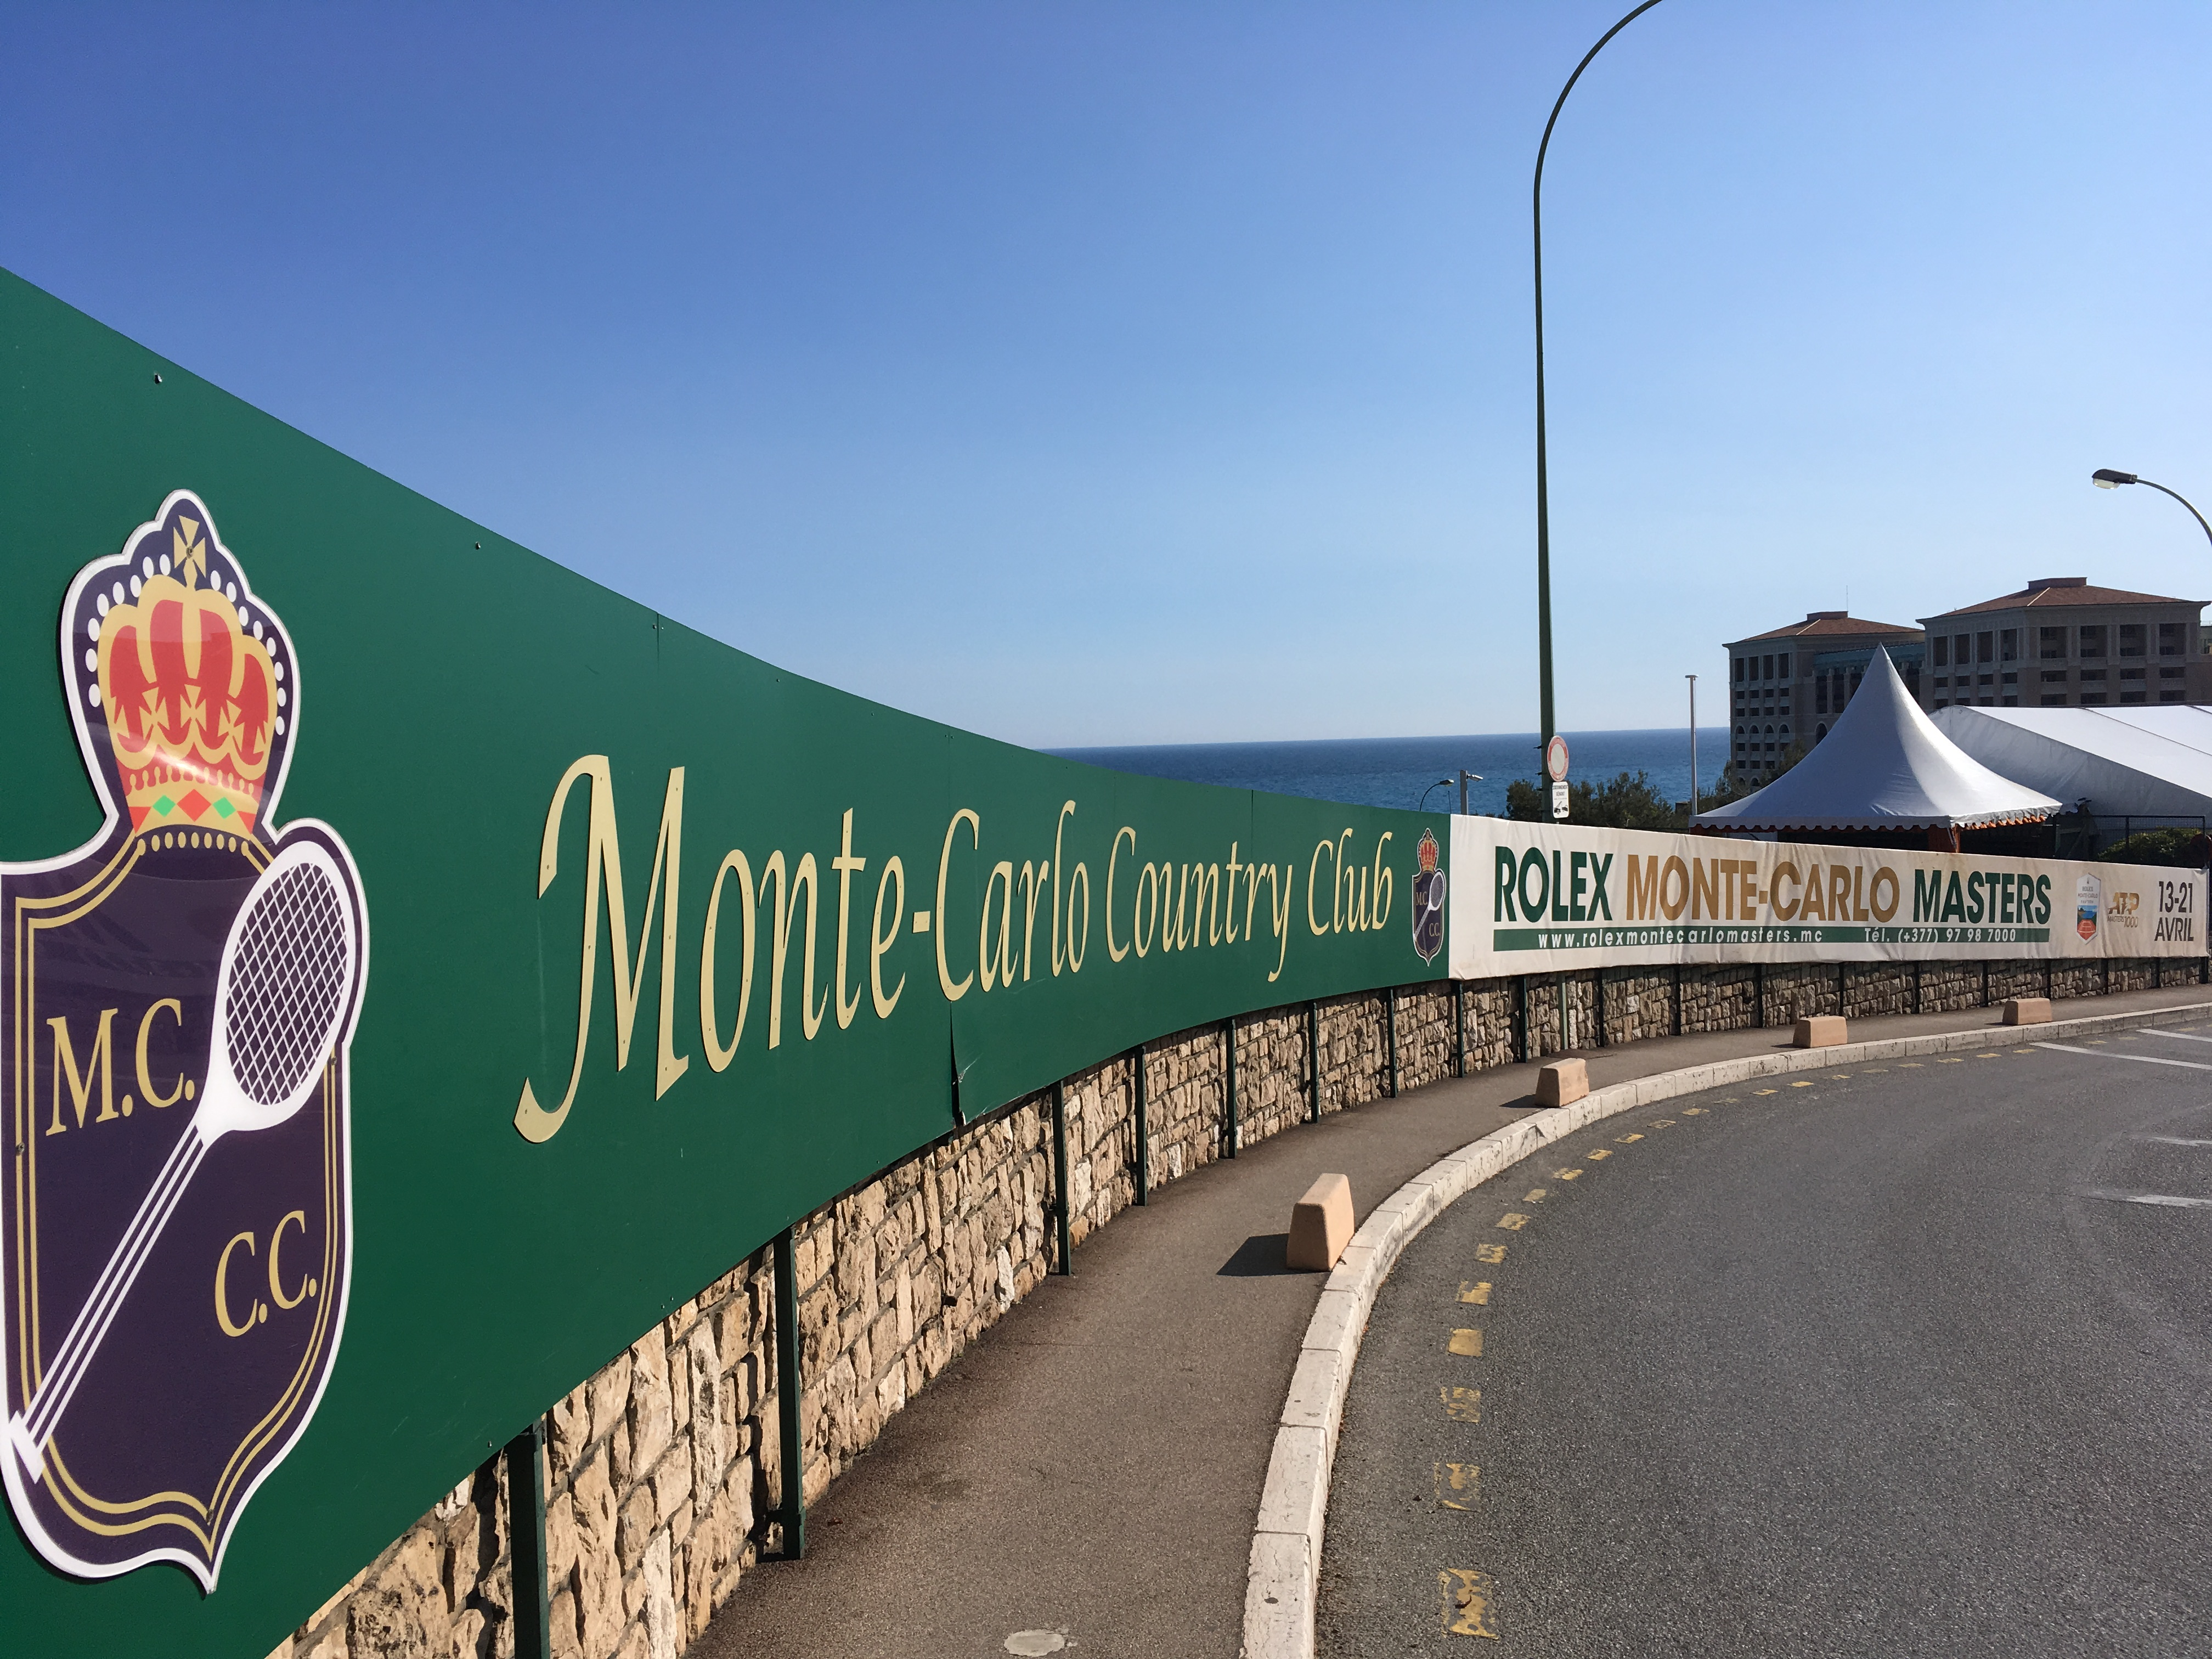 Monte Carlo Country Club, host of the Monte-Carlo Masters